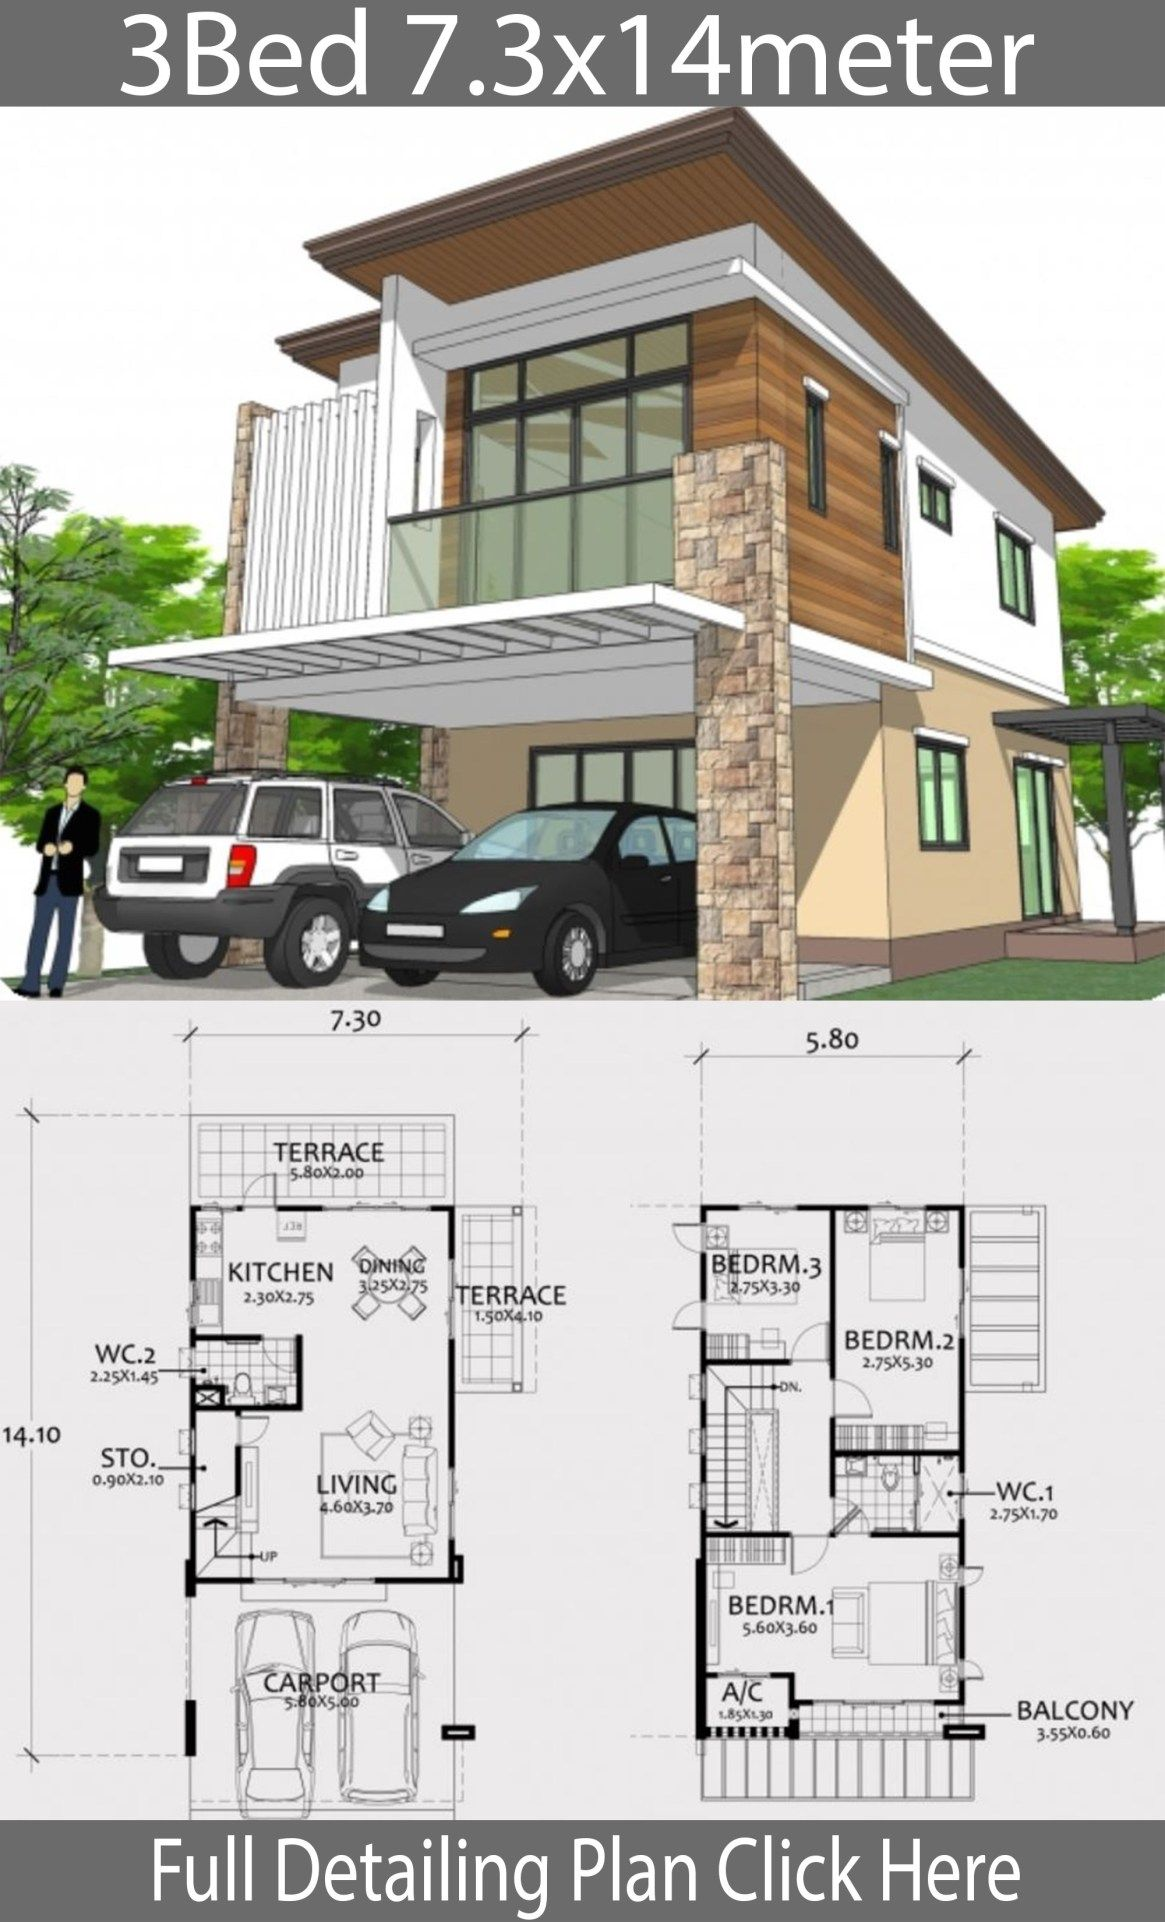 Modern Style Two Story House Plan 7 3x14m Home Design With Plansearch Narrow House Plans Two Story House Plans House Blueprints